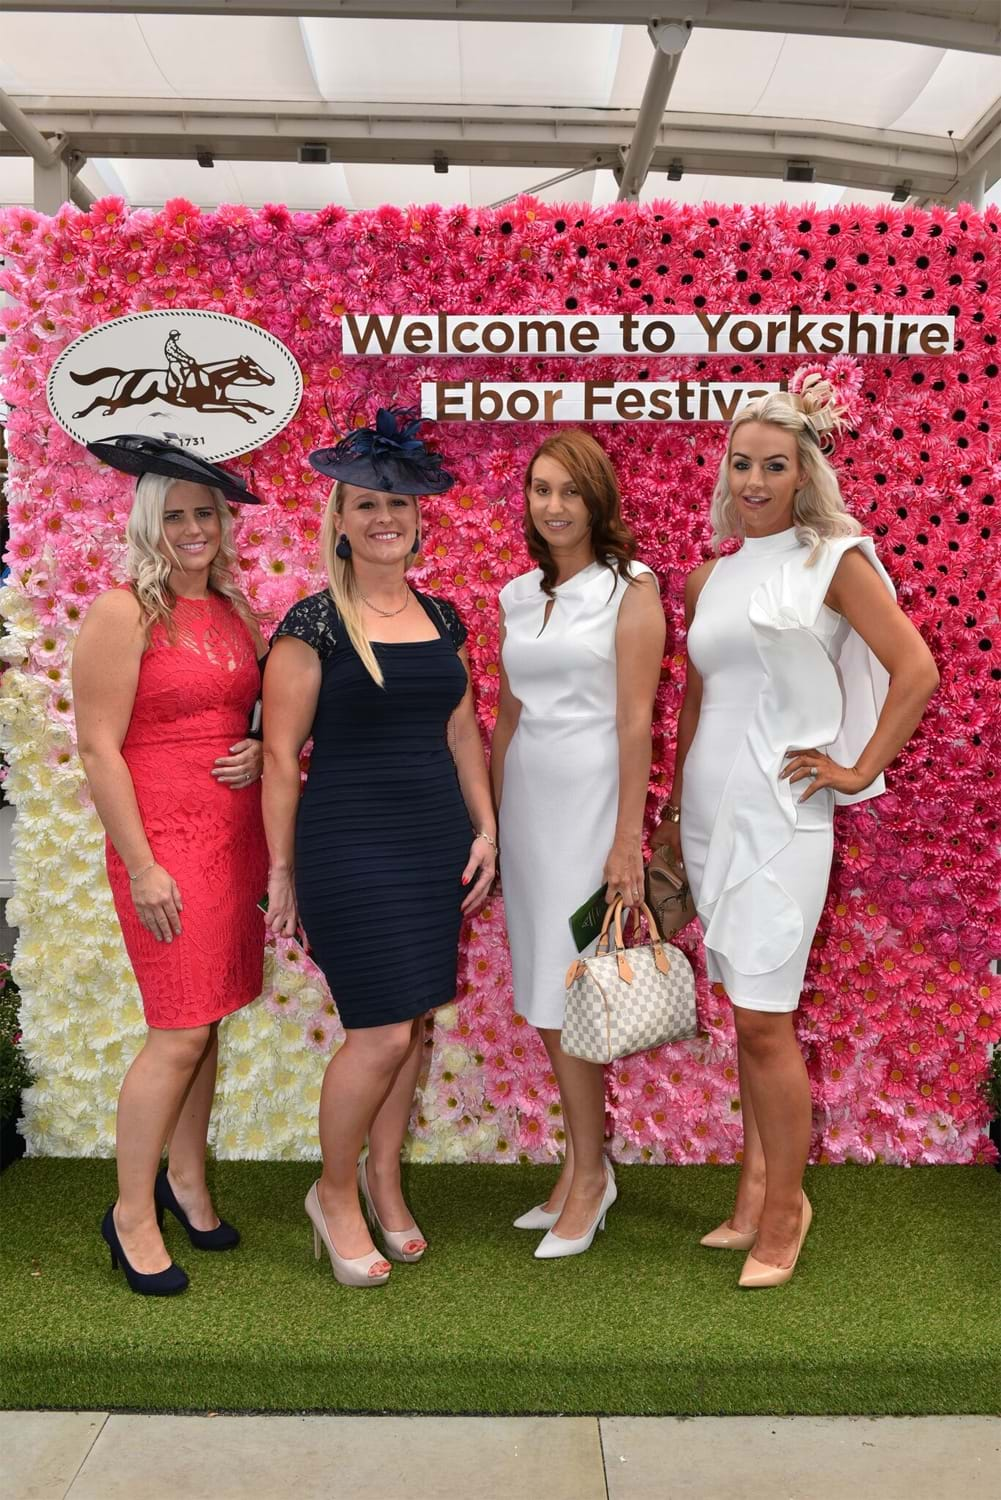 Welcome to Yorkshire Ebor Festival